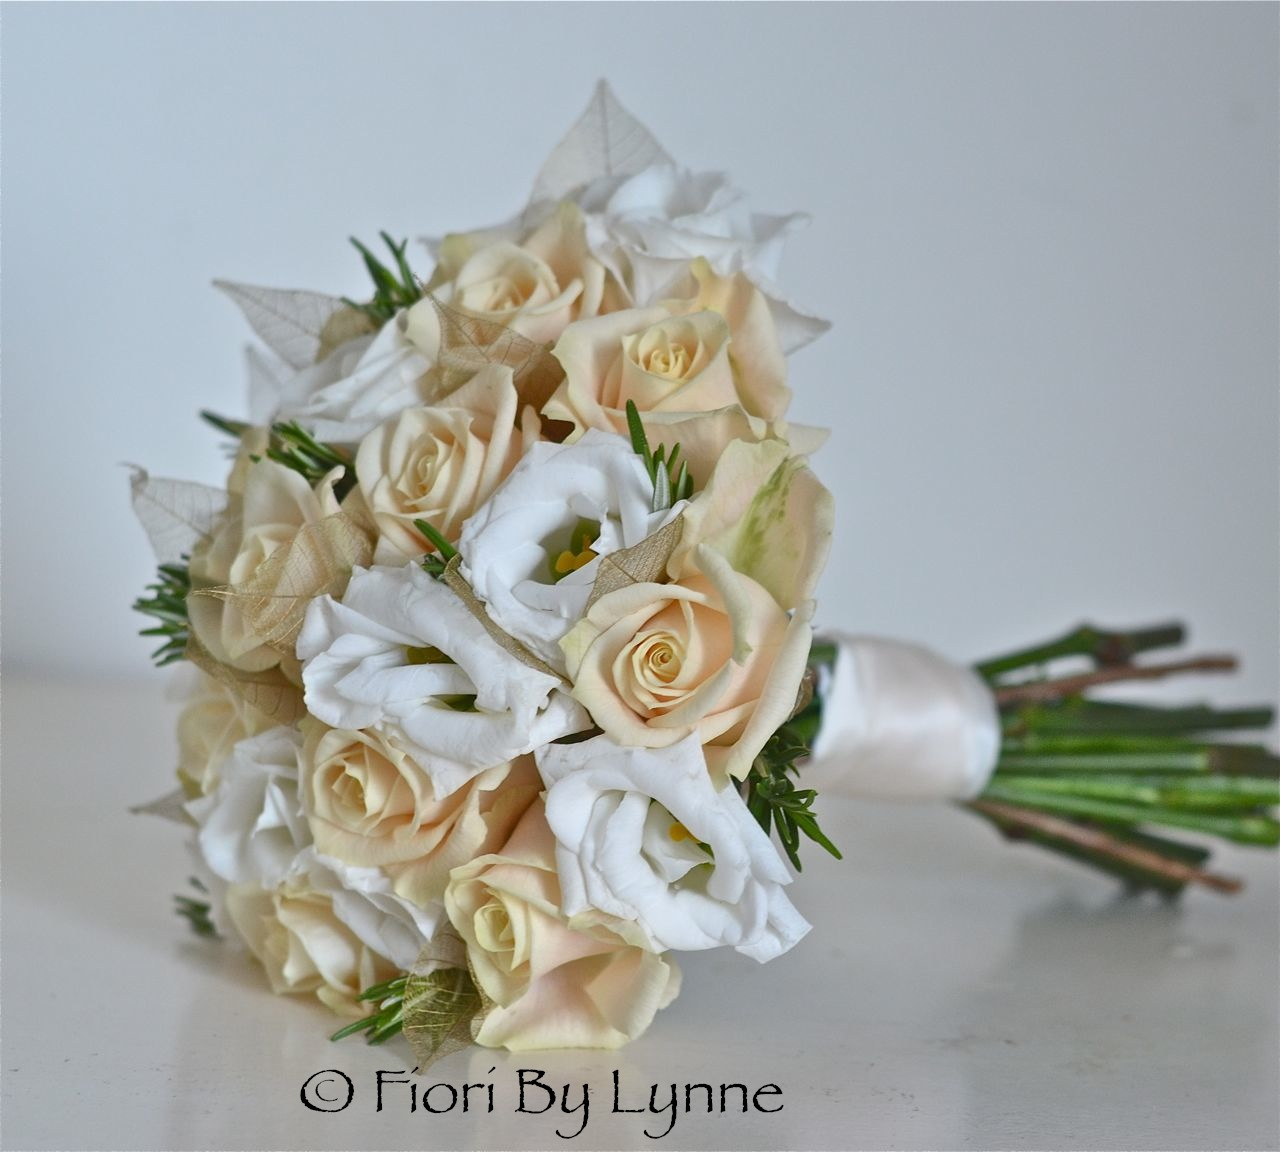 White And Gold Wedding Flowers: Wedding Flowers Blog: Louise's Cream And Gold Wedding